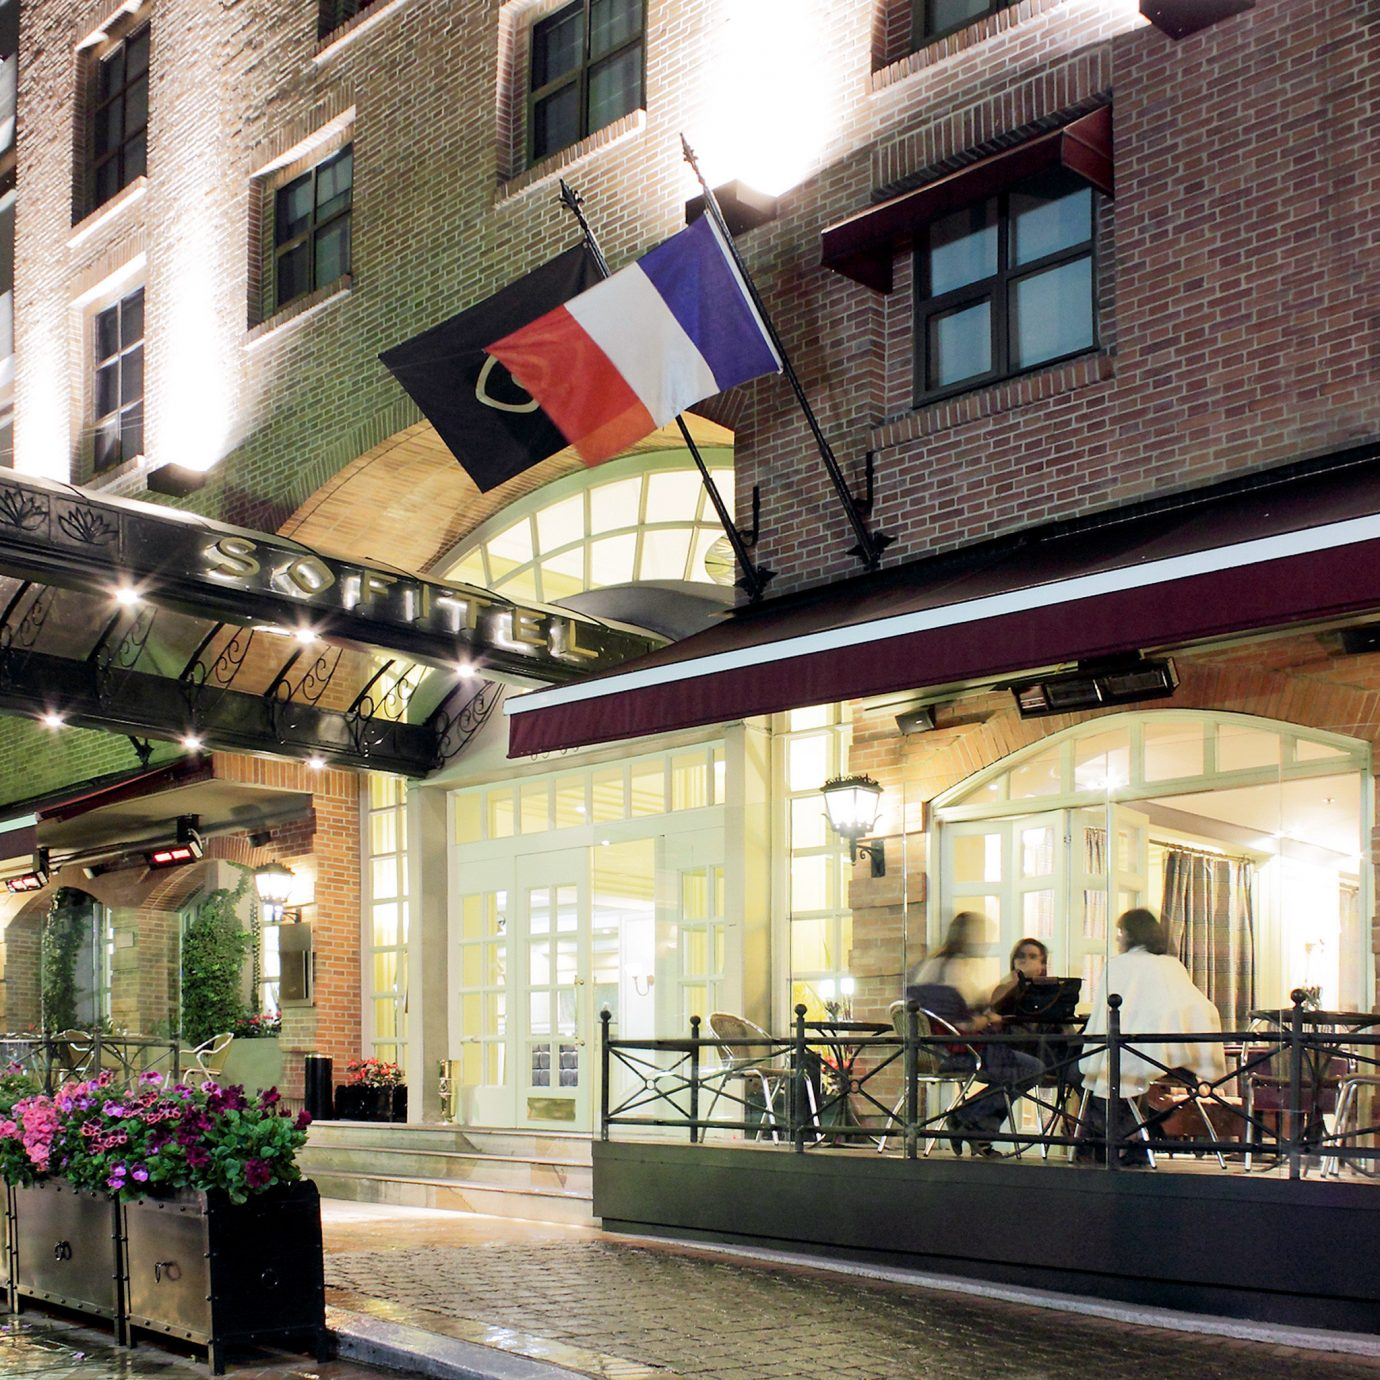 Architecture Buildings Classic Exterior Grounds Resort building Town restaurant Bar street plaza City stone